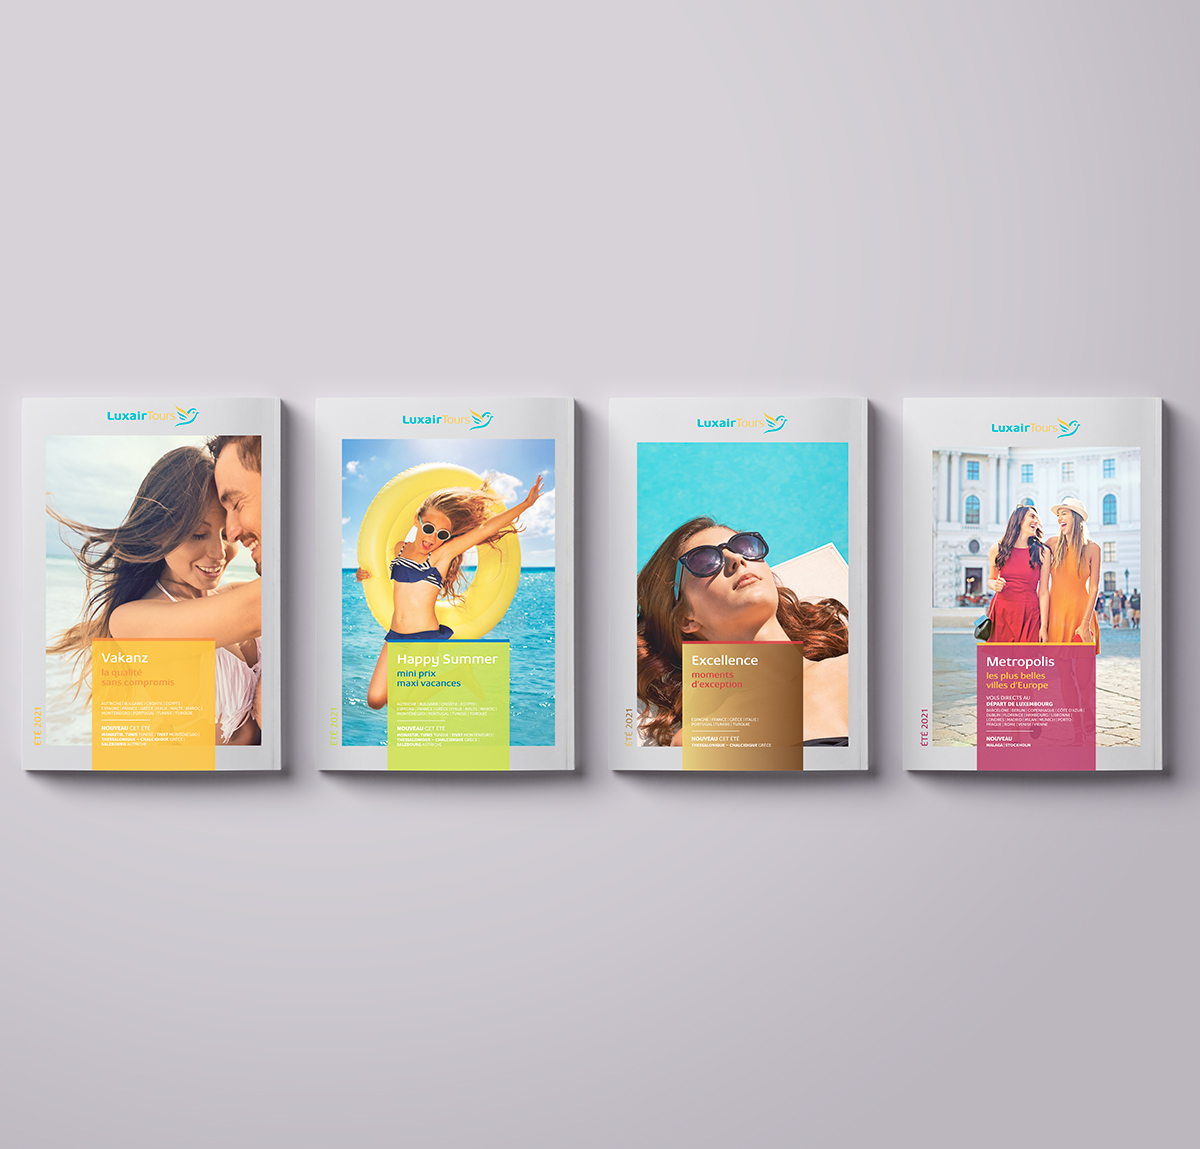 Luxair_covers_catalogues_luxair_2021